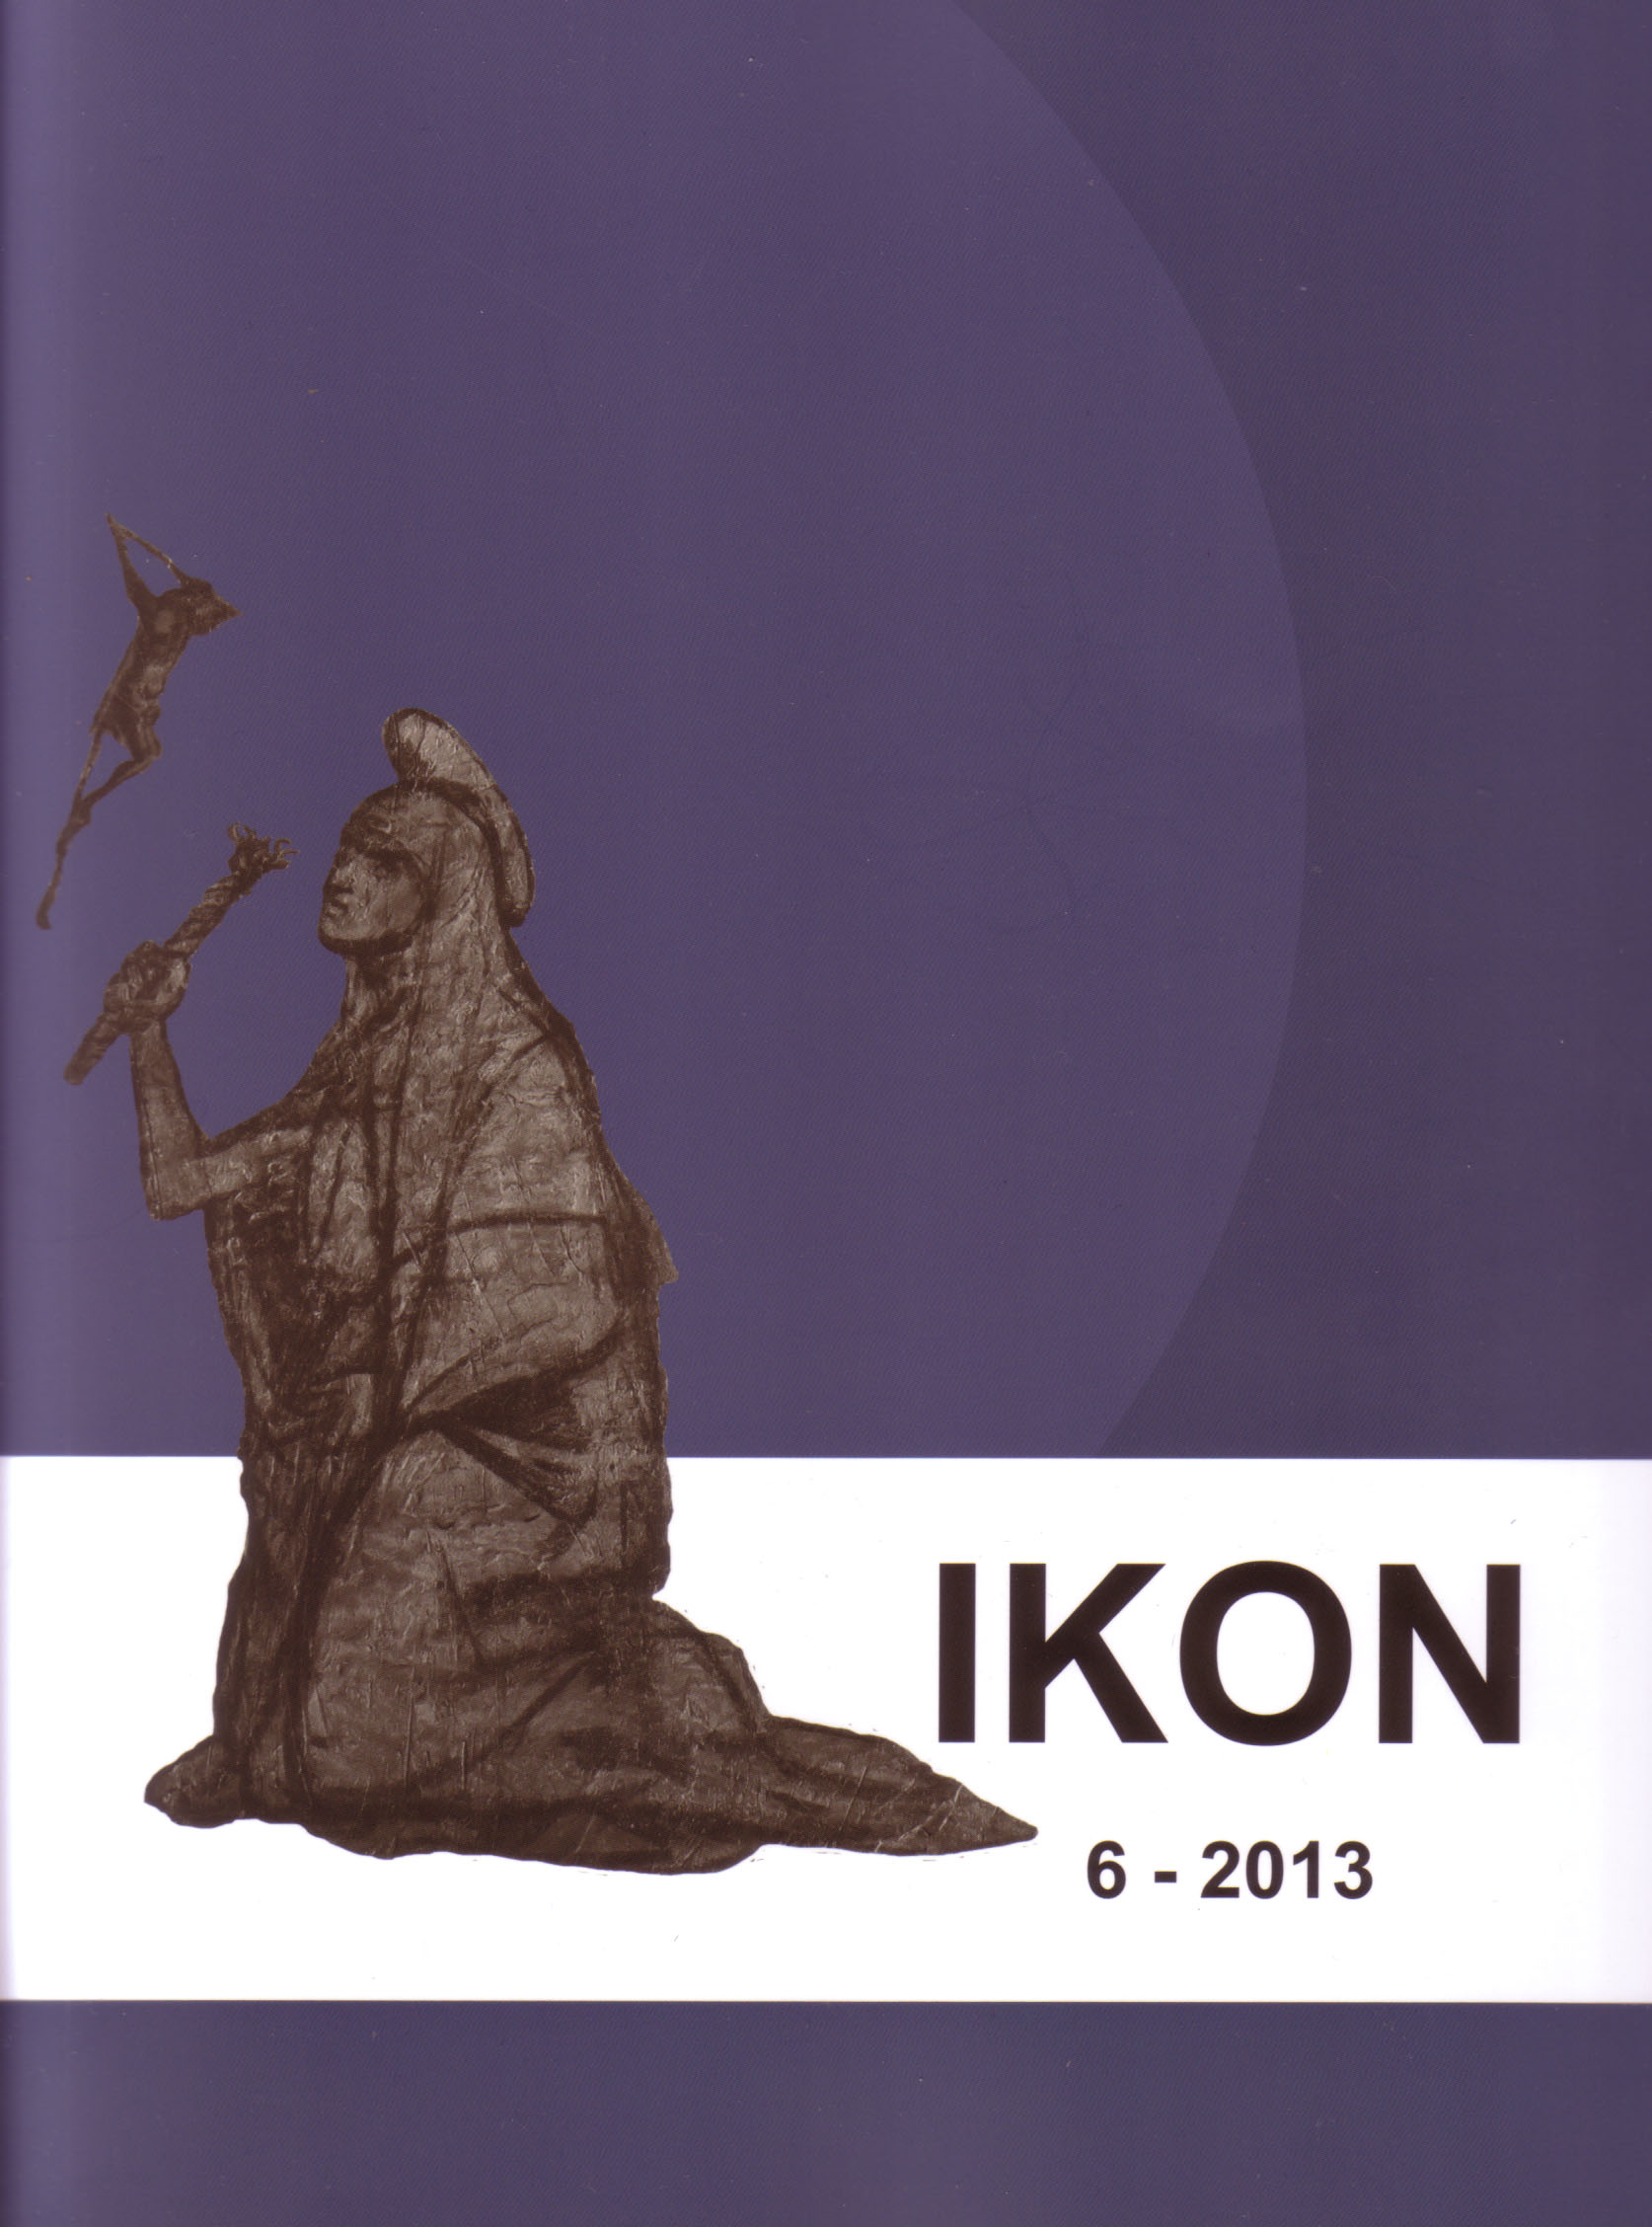 IKON journal number 6 2013